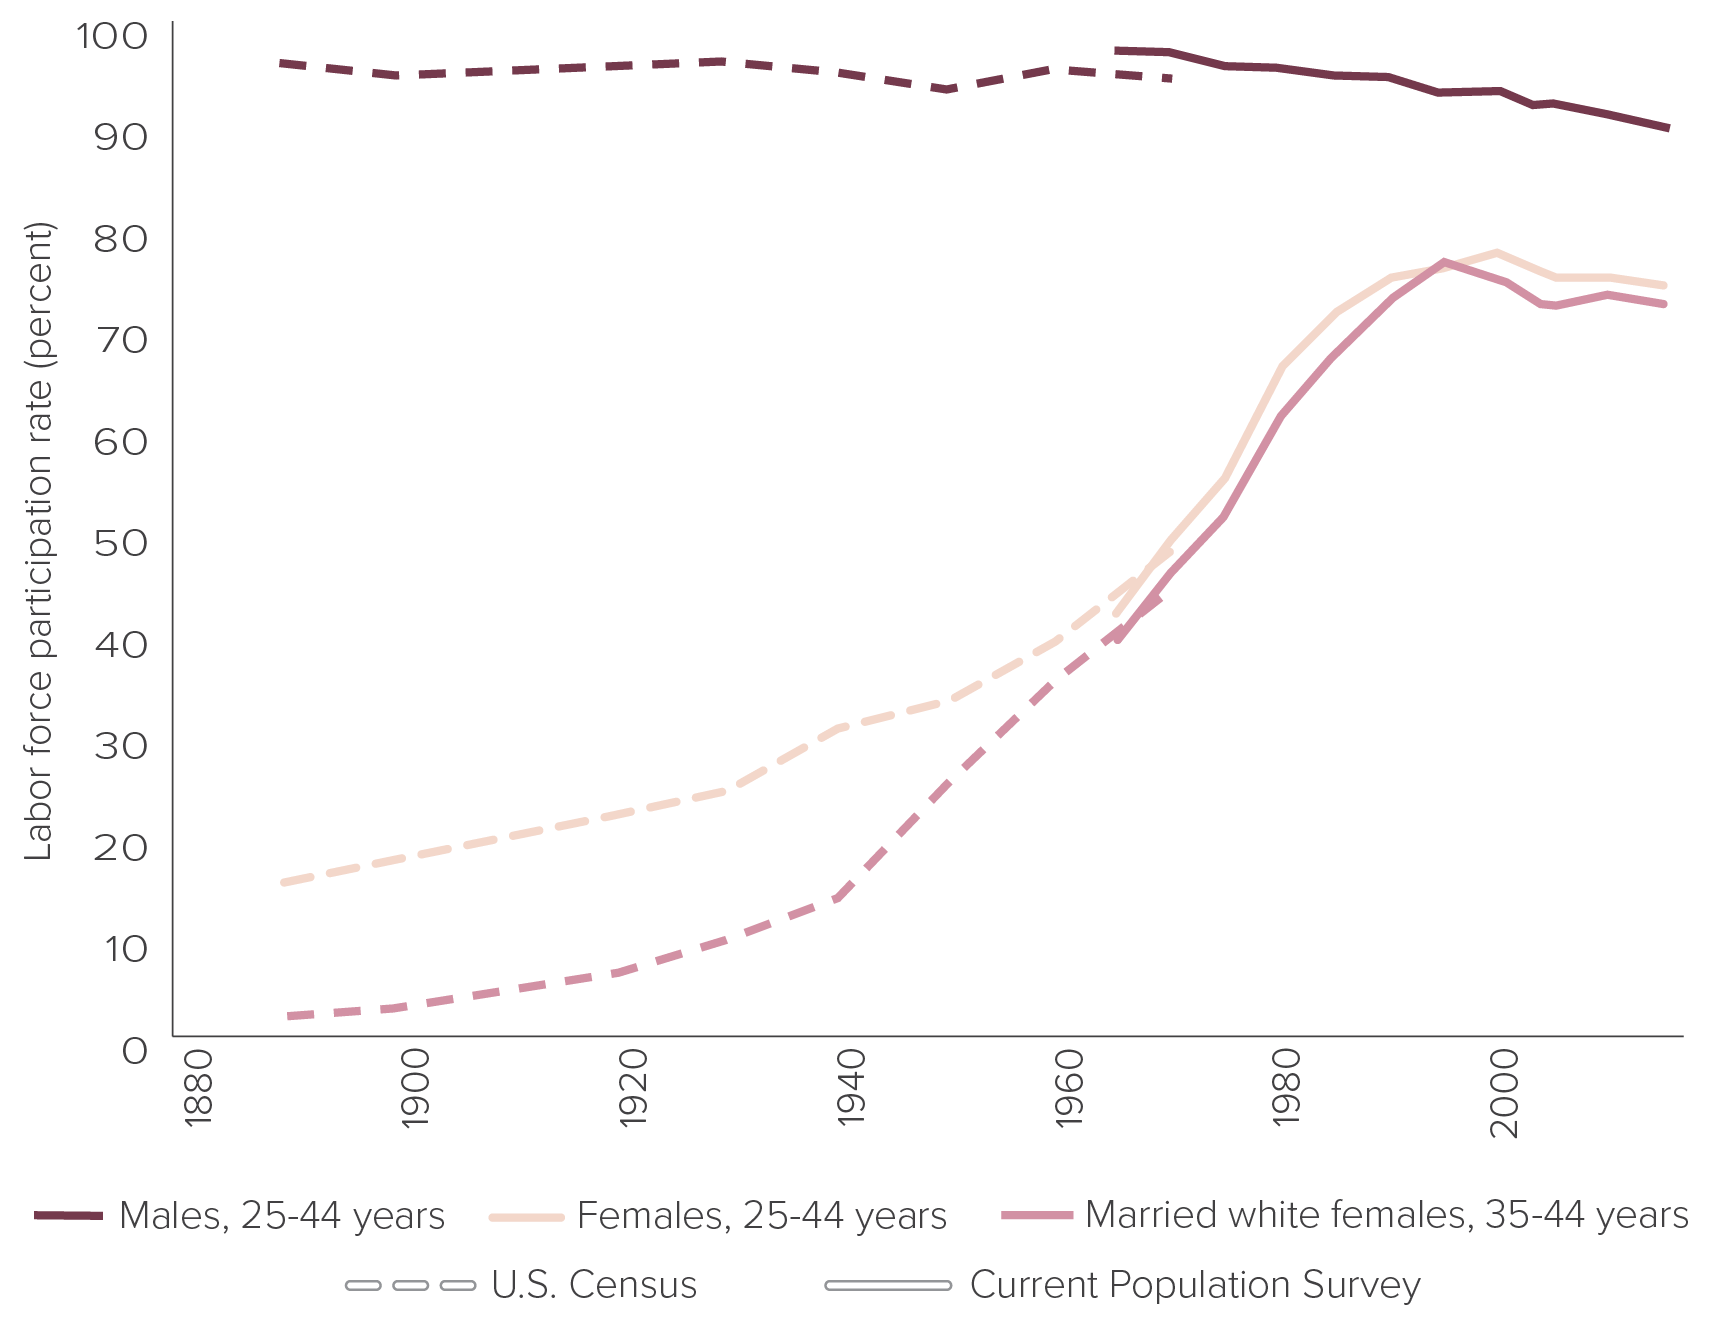 """Figure 8: Labor force participation rates in the United States by sex and marital status, 1890-2016    Source:  Claudia Goldin, """"The Quiet Revolution that Transformed Women's Employment, Education and Family,"""" Harvard University Richard T. Ely Lecture, Figure 1,  https://scholar.harvard.edu/files/goldin/files/the_quiet_revolution_that_transformed_womens_employment_education_and_family.pdf ; """"Employment Status of the Civilian Noninstitutional Population by Age, Sex, and Race,"""" U.S. Bureau of Labor Statistics; """"(Unadj) Civilian Labor Force Level — Married 35-44 yrs., White Women,"""" U.S. Bureau of Labor Statistics; """"Current Population Survey,"""" U.S. Census Bureau; and """"Labor Force (Series D 1-682),"""" Historical Statistics, U.S. Census Bureau."""